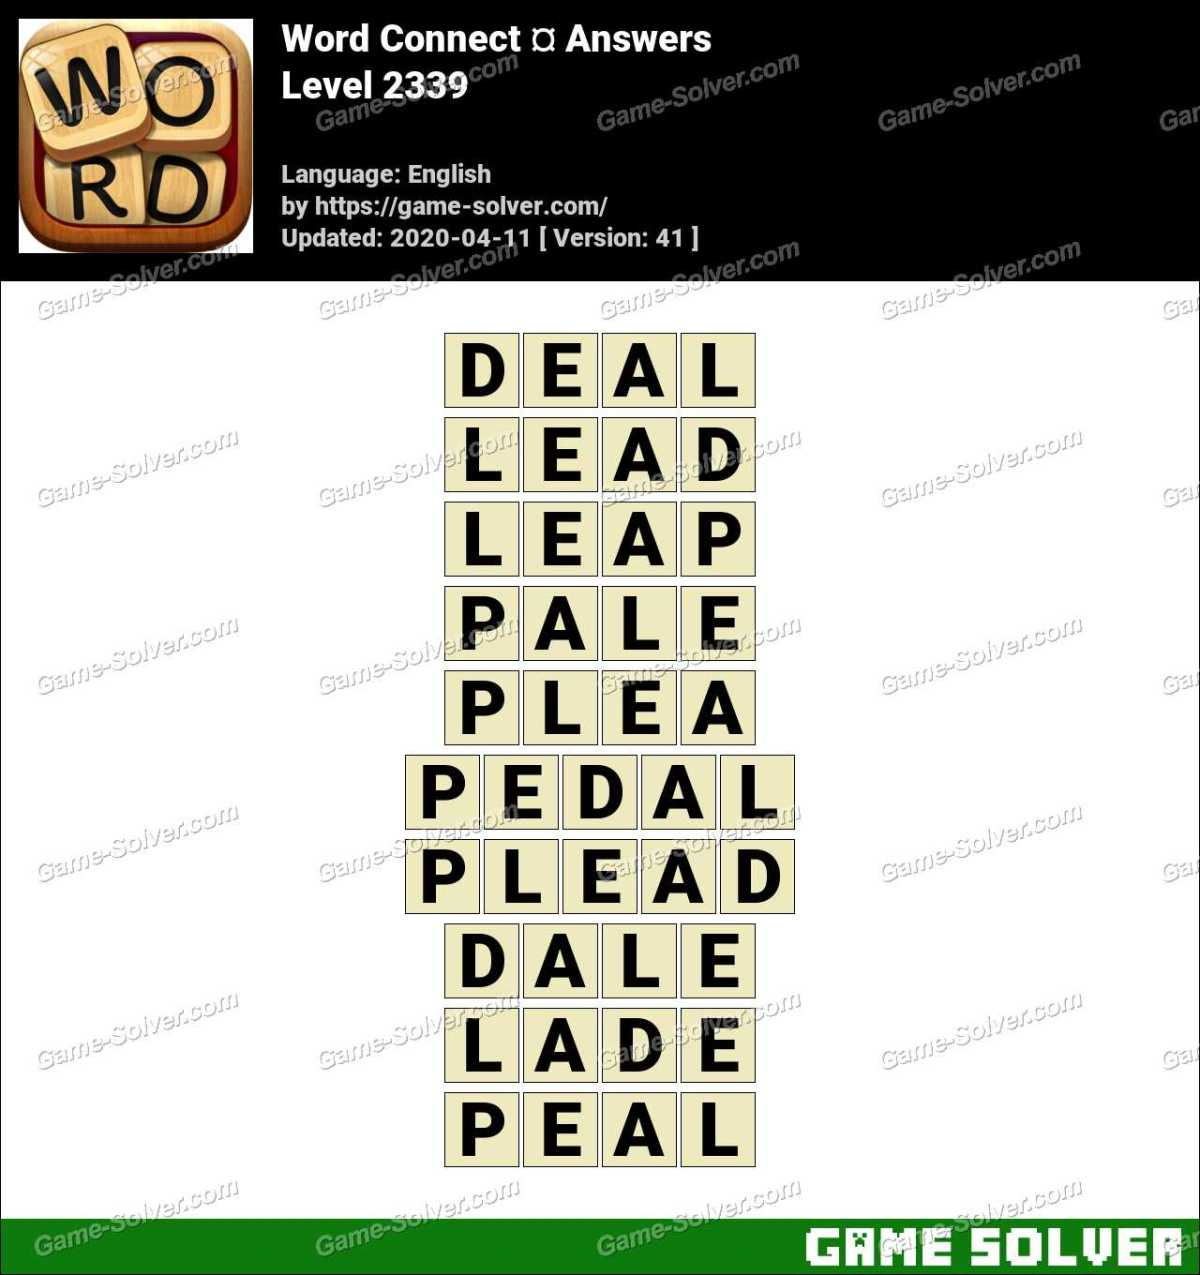 Word Connect Level 2339 Answers